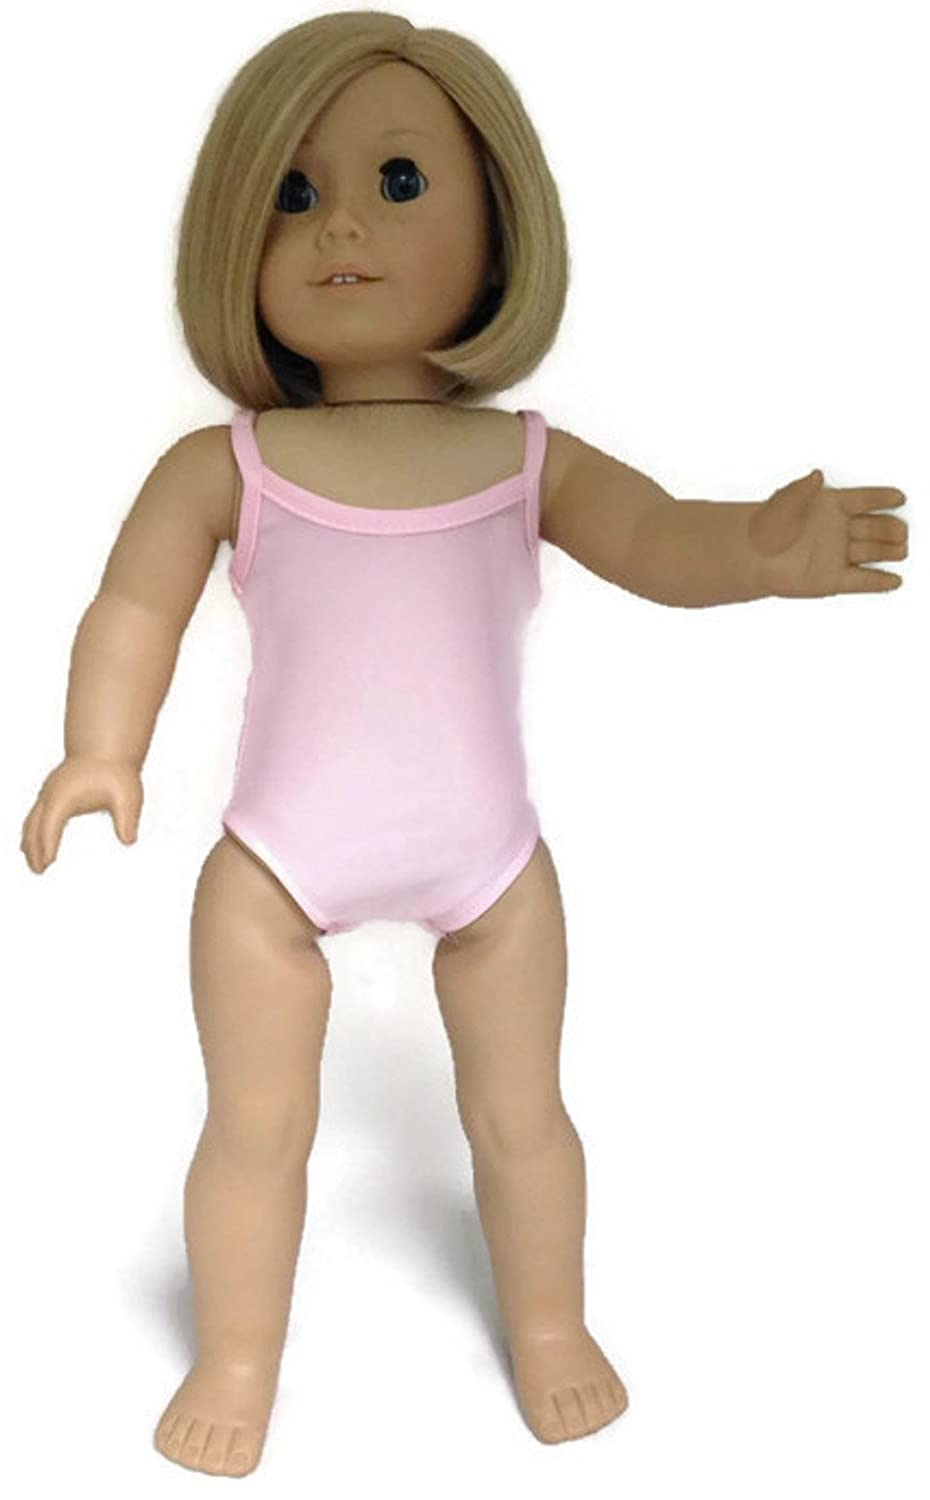 Doris Doll Boutique Pink Gymnastics Leotard and Rainbow Wrap Around Skirt fits 18 inch American Girl Doll PO Fung Co